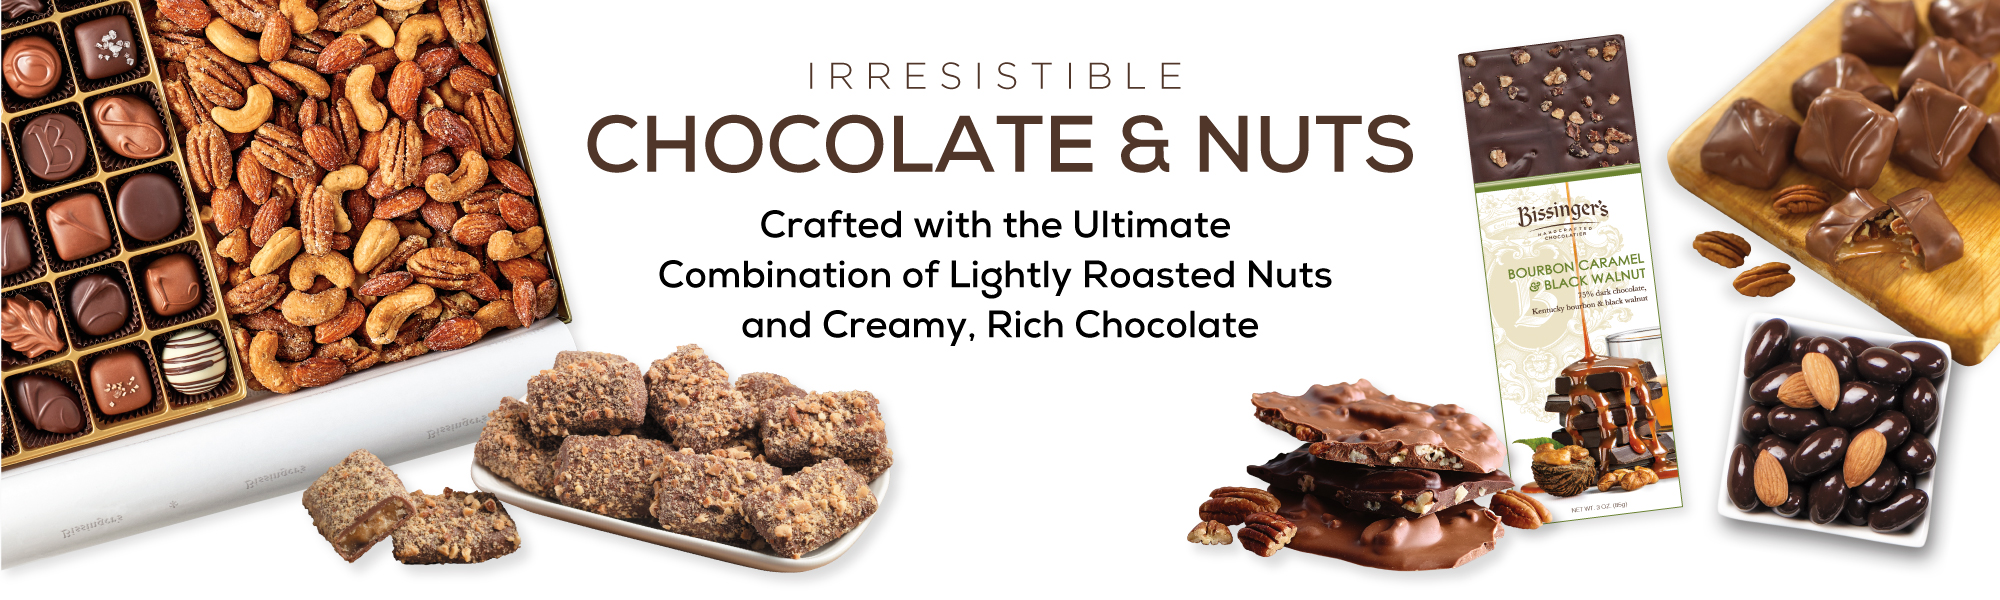 Bissinger's Chocolate & Nuts